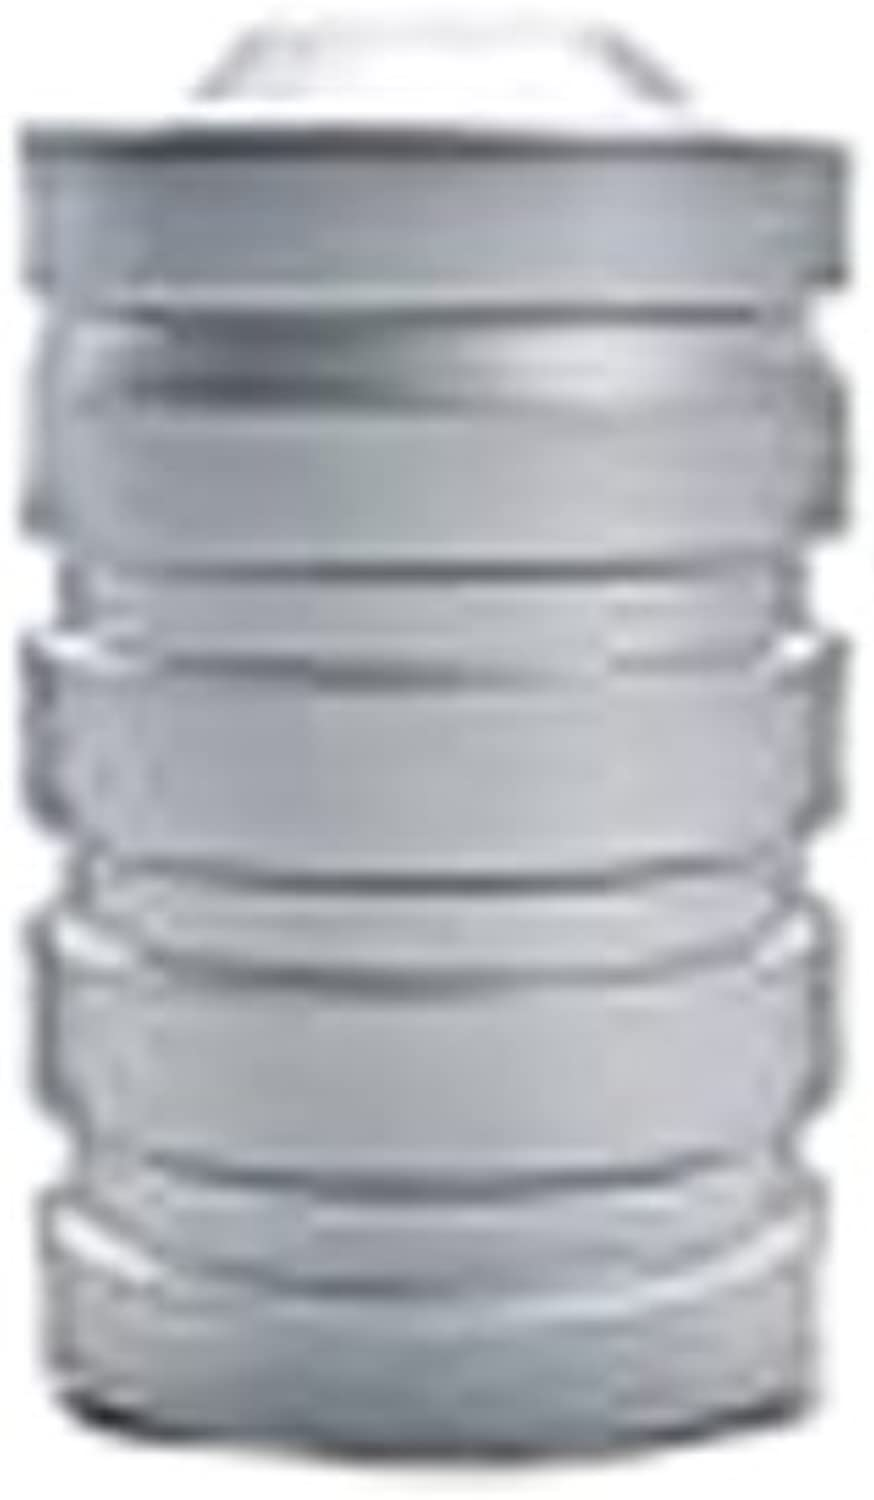 Lee Precision 358-148 WC 6 Cavity Bullet